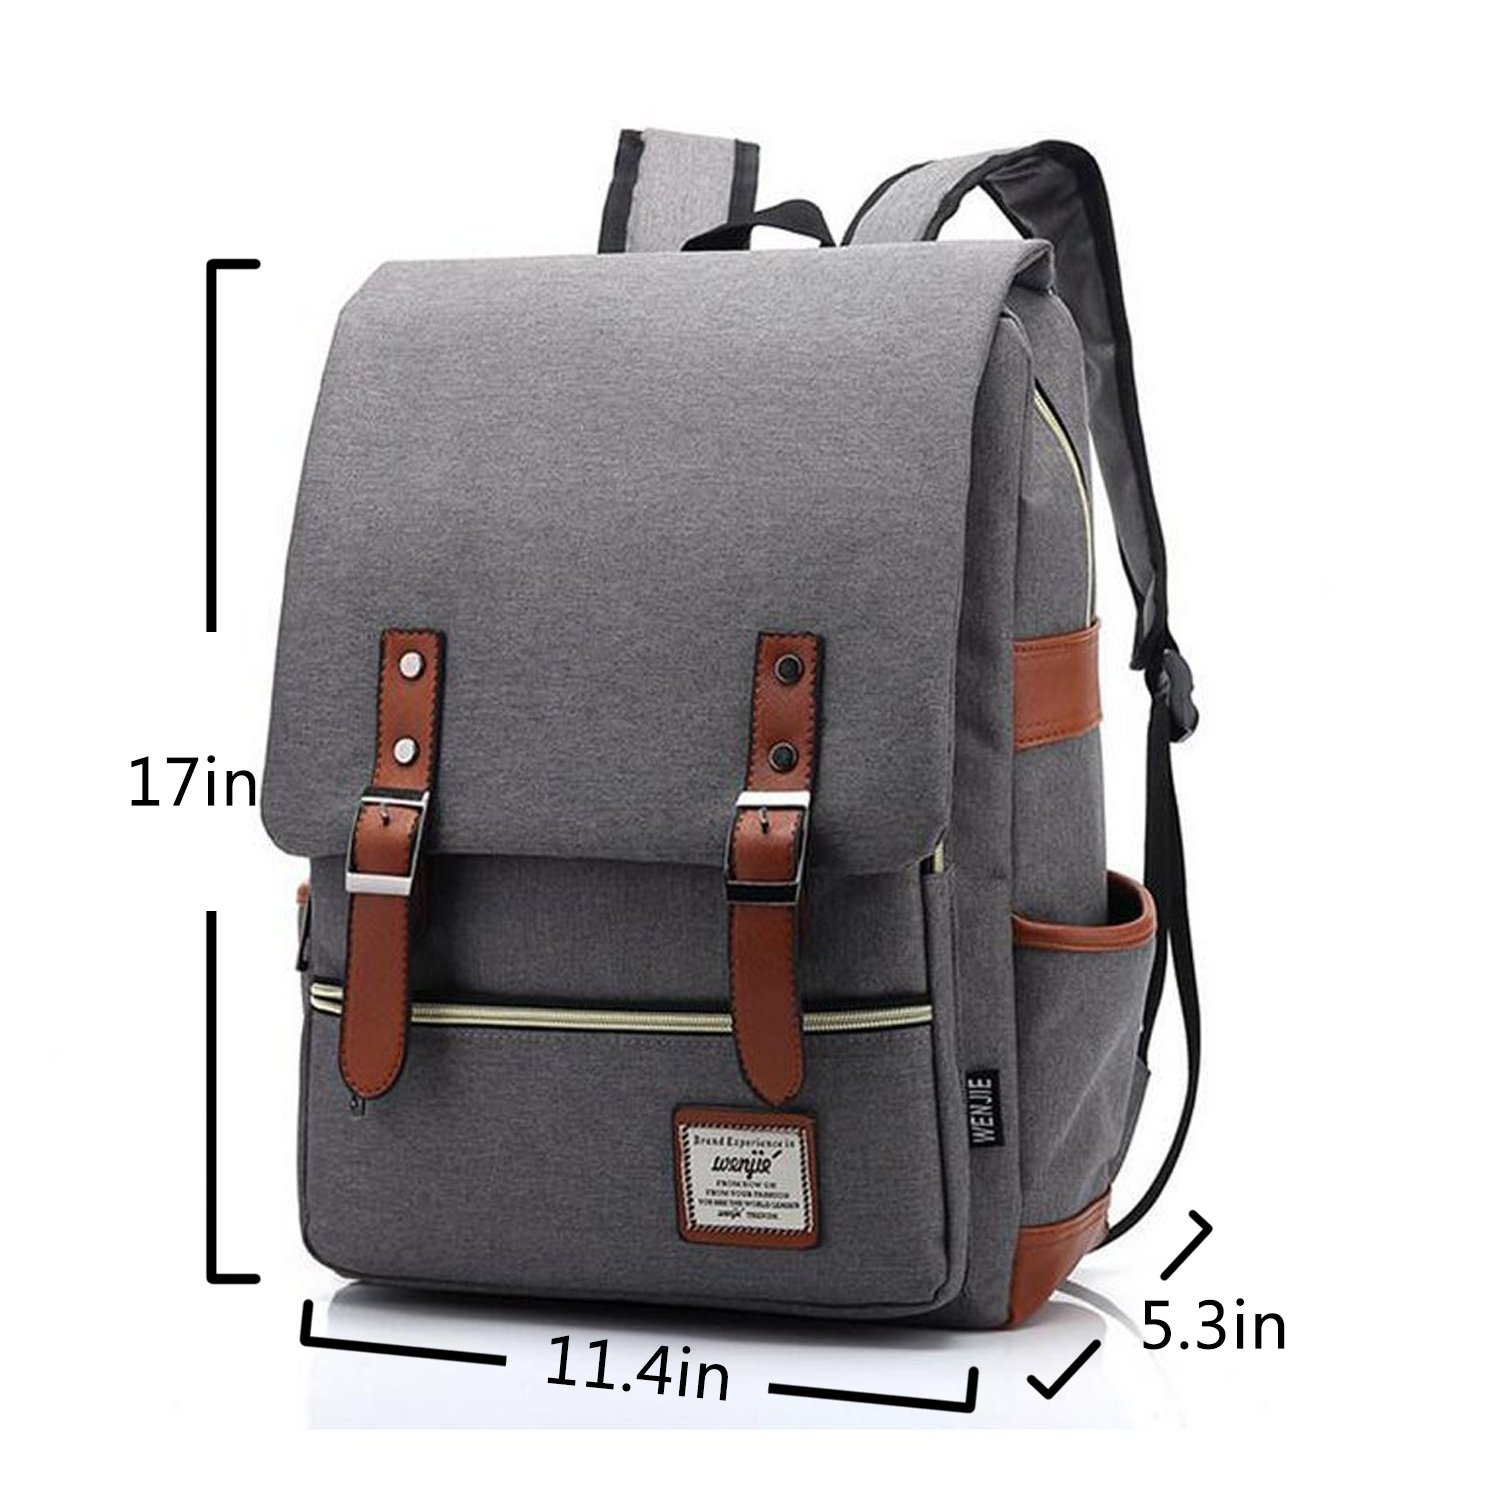 Vintage Canvas Backpack - Lightweight Canvas Laptop Outdoor Backpack, Travel Backpack with Laptop Sleeve, College School Bag with Side Pockets Canvas Rucksack for School Working Hiking (Retro Grey) by GoTravel2 (Image #2)